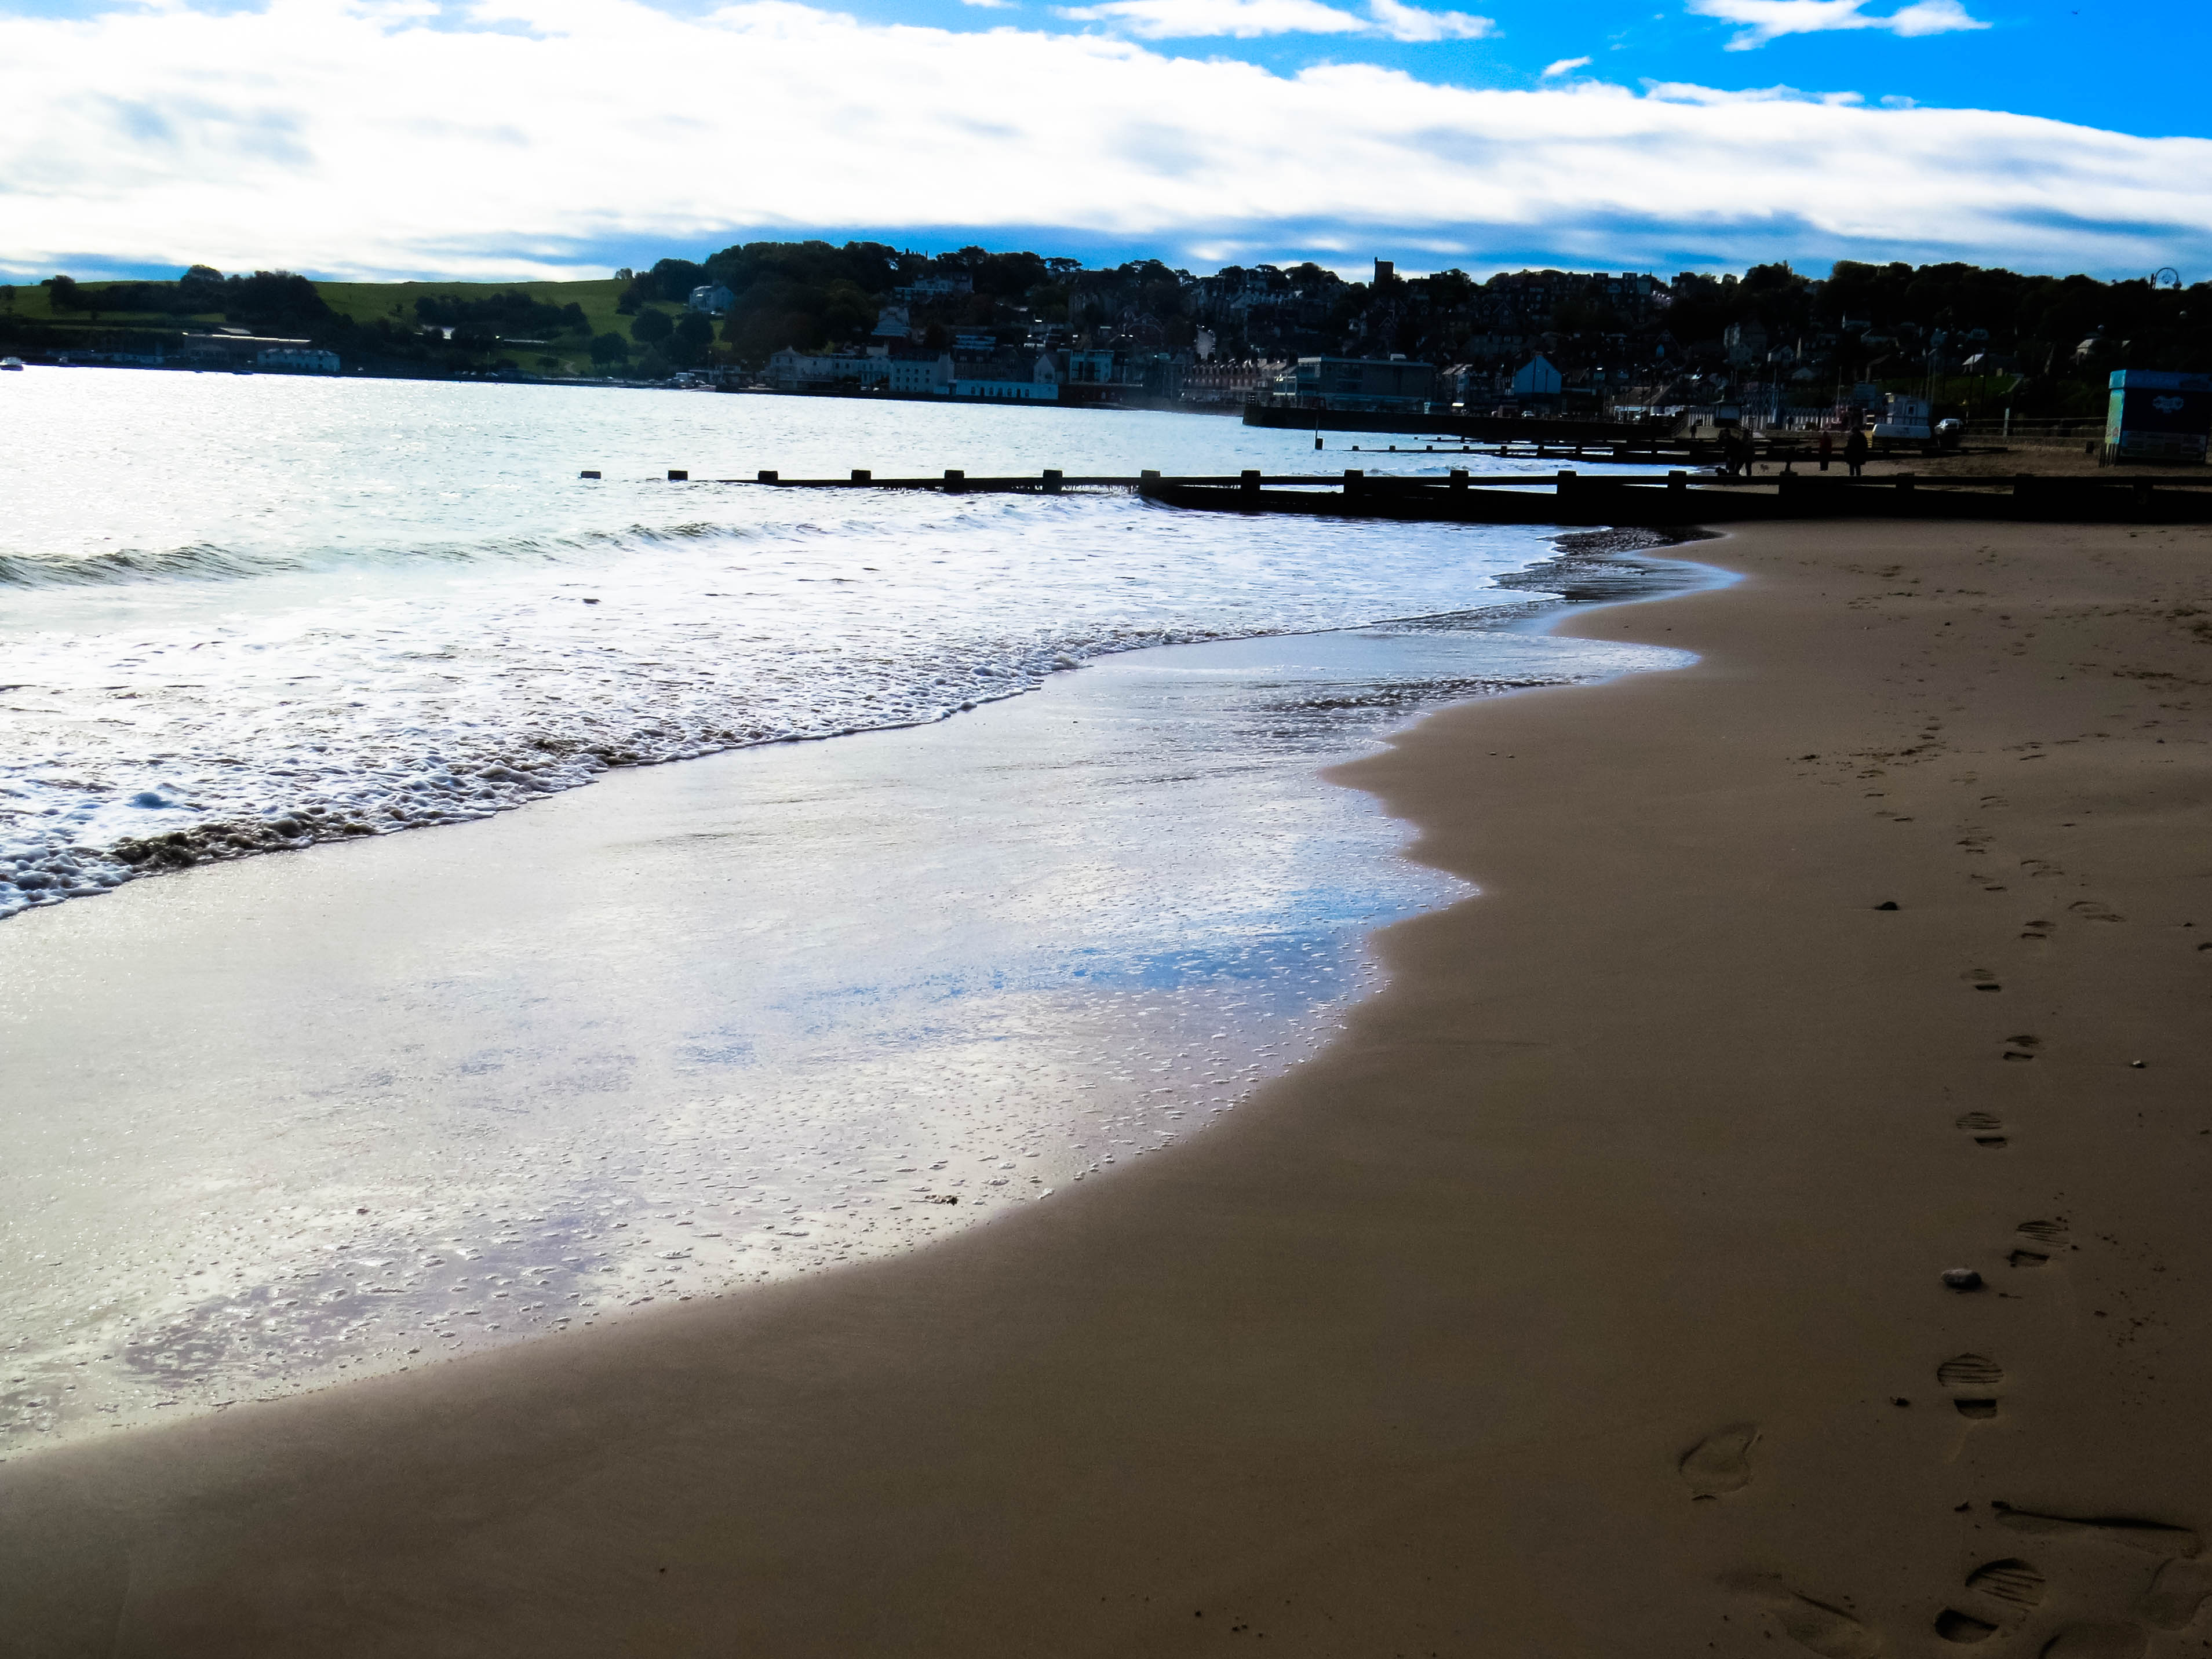 a picture of an empty swanage beach in dorset during the winter